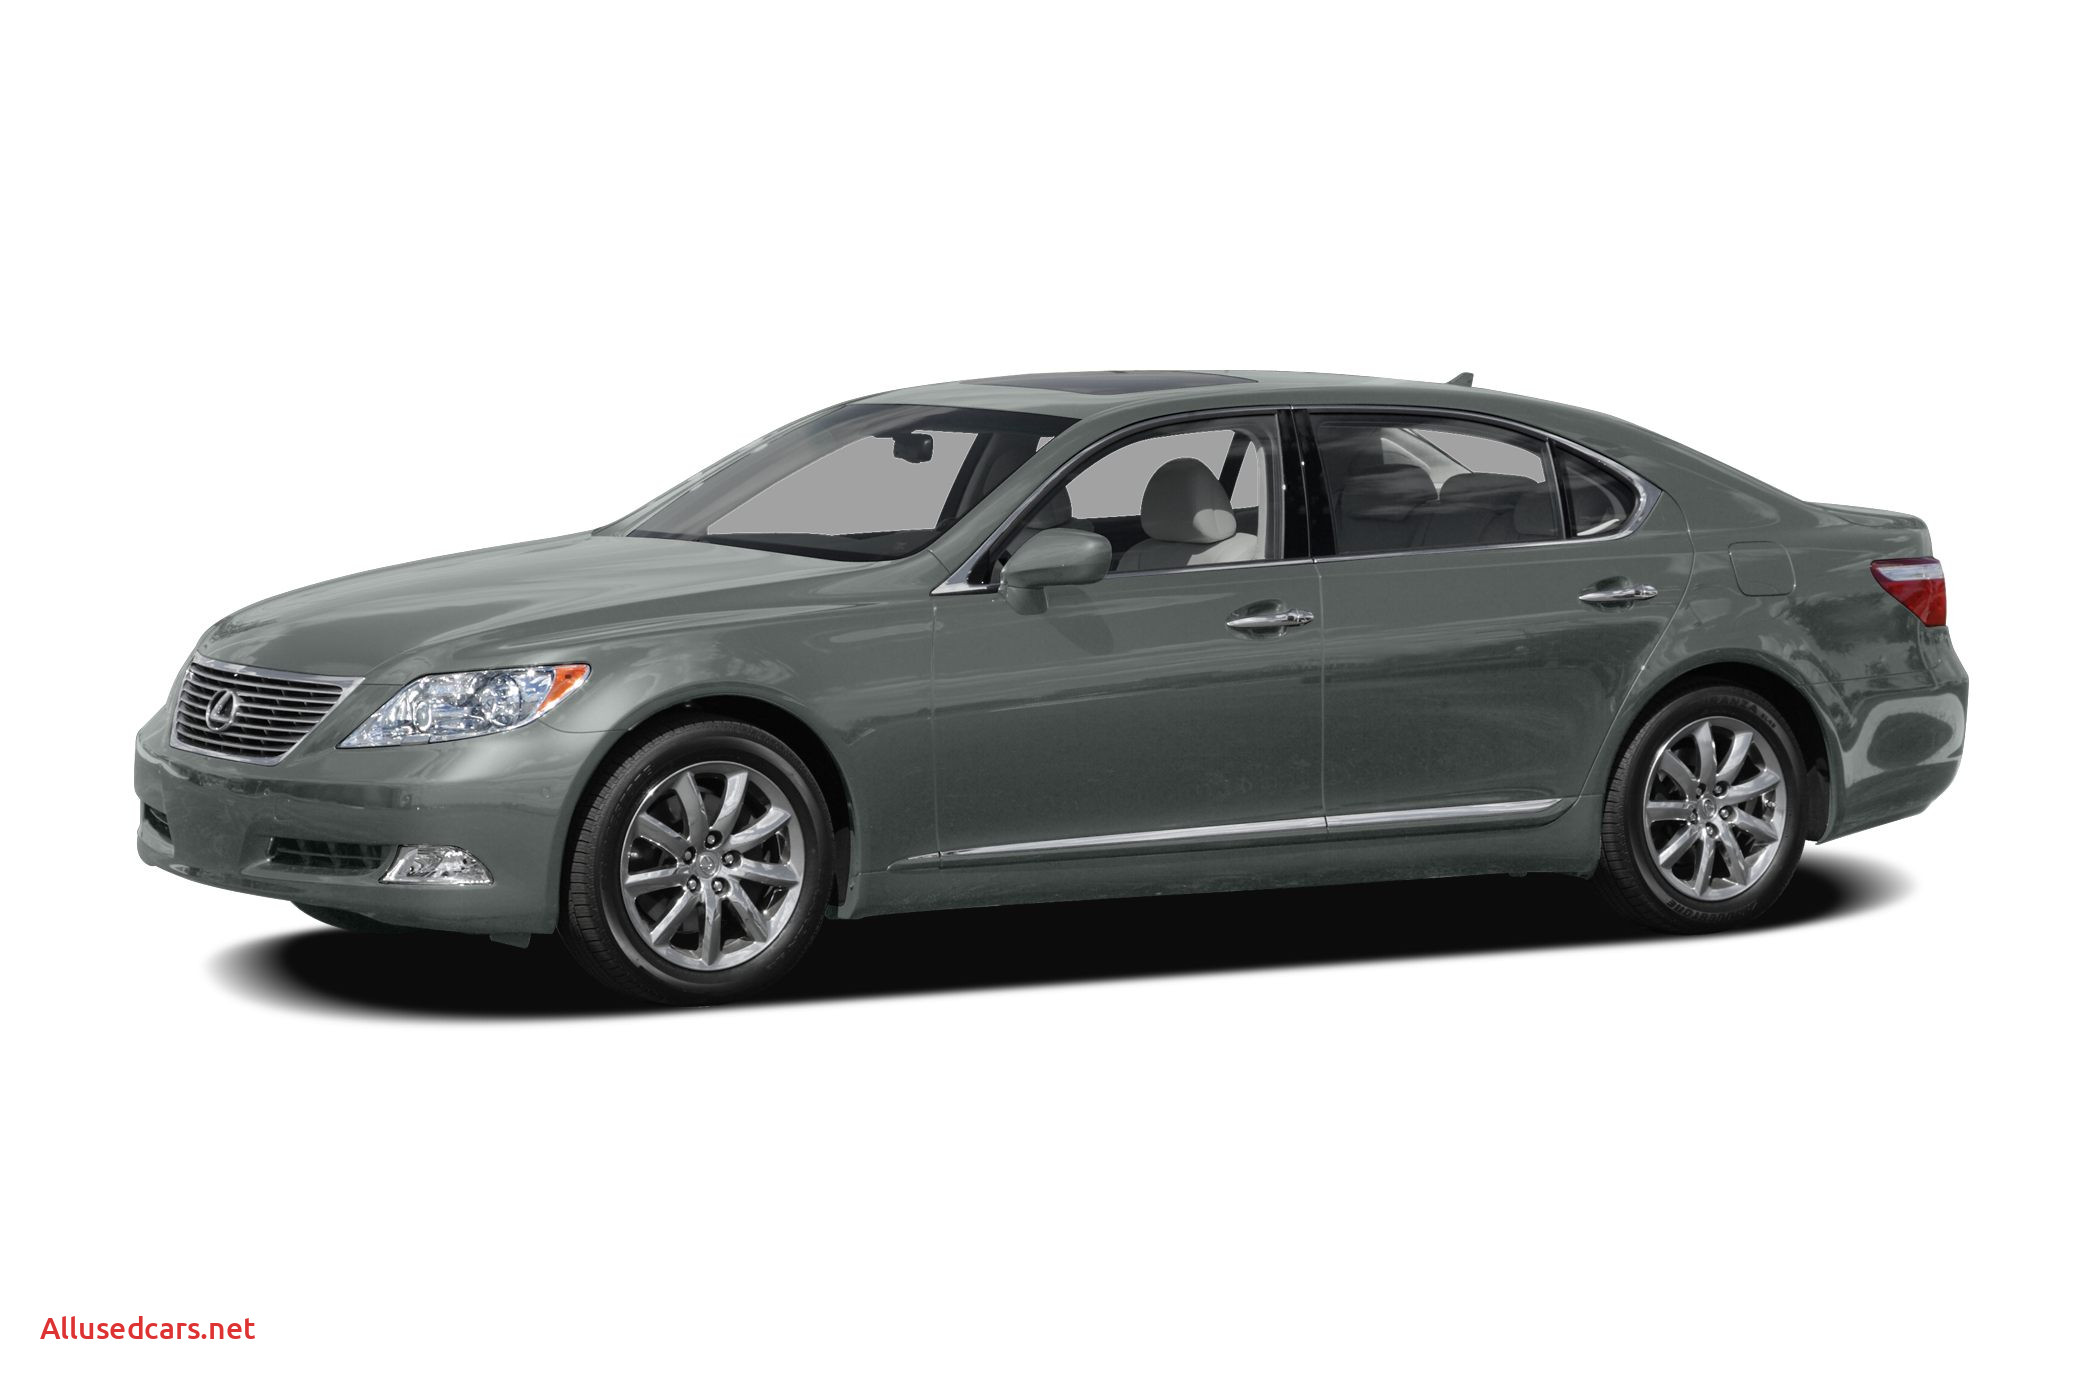 Lexus Ls 460 for Sale Inspirational 2008 Lexus Ls 460